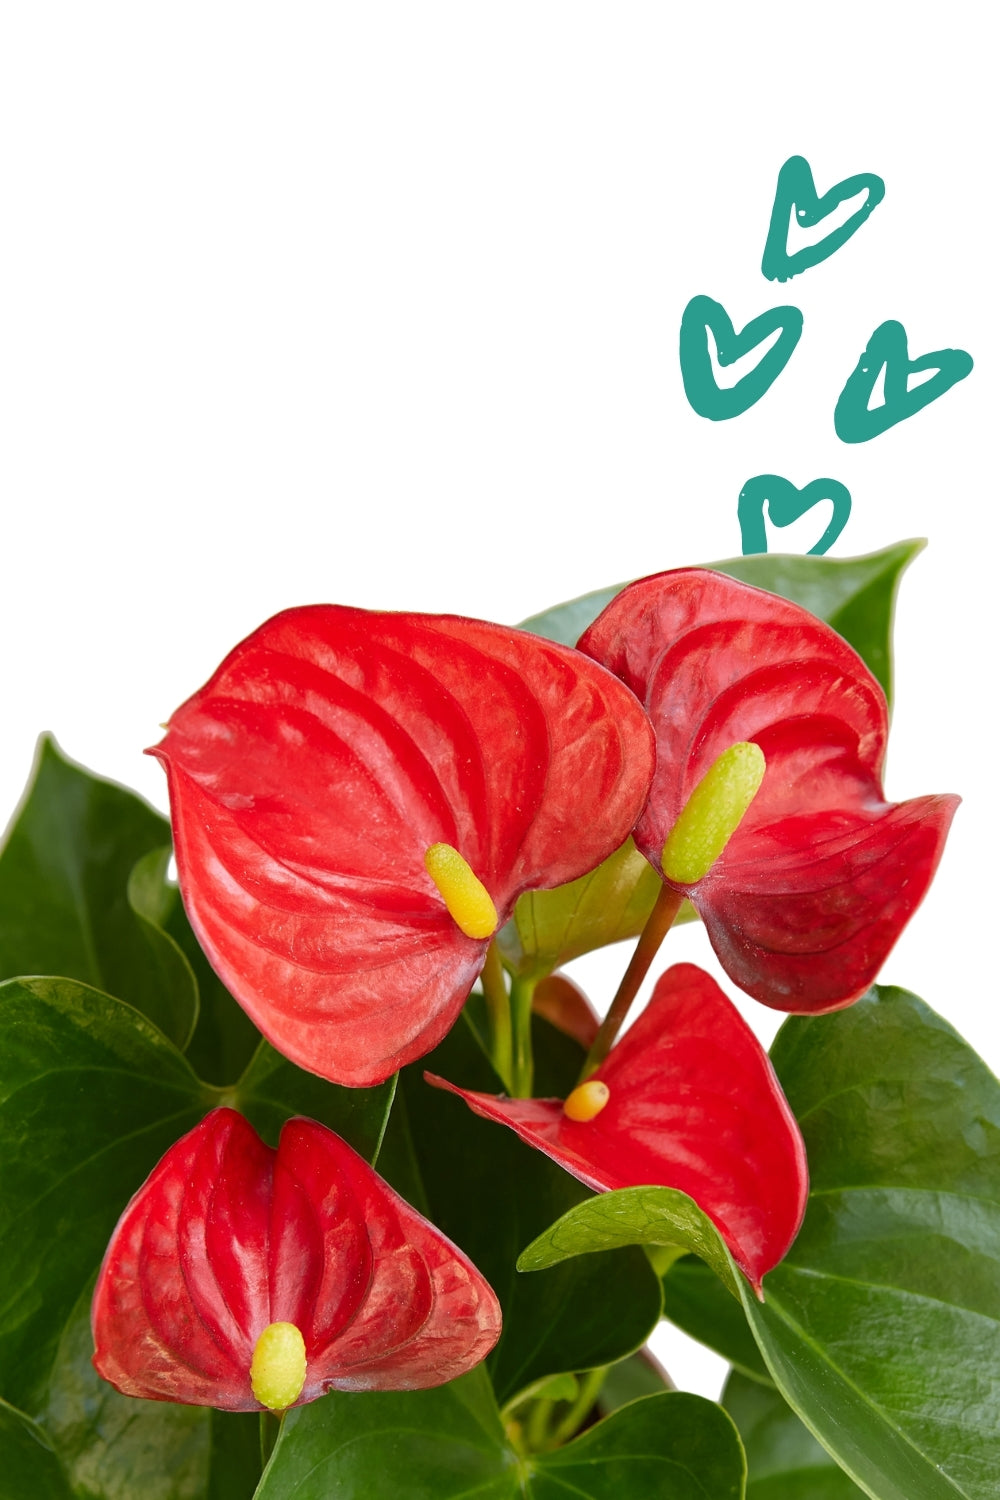 Flamingo Flower, Red/Pink/White Anthurium, valentines day flowers, valentines delivery flowers